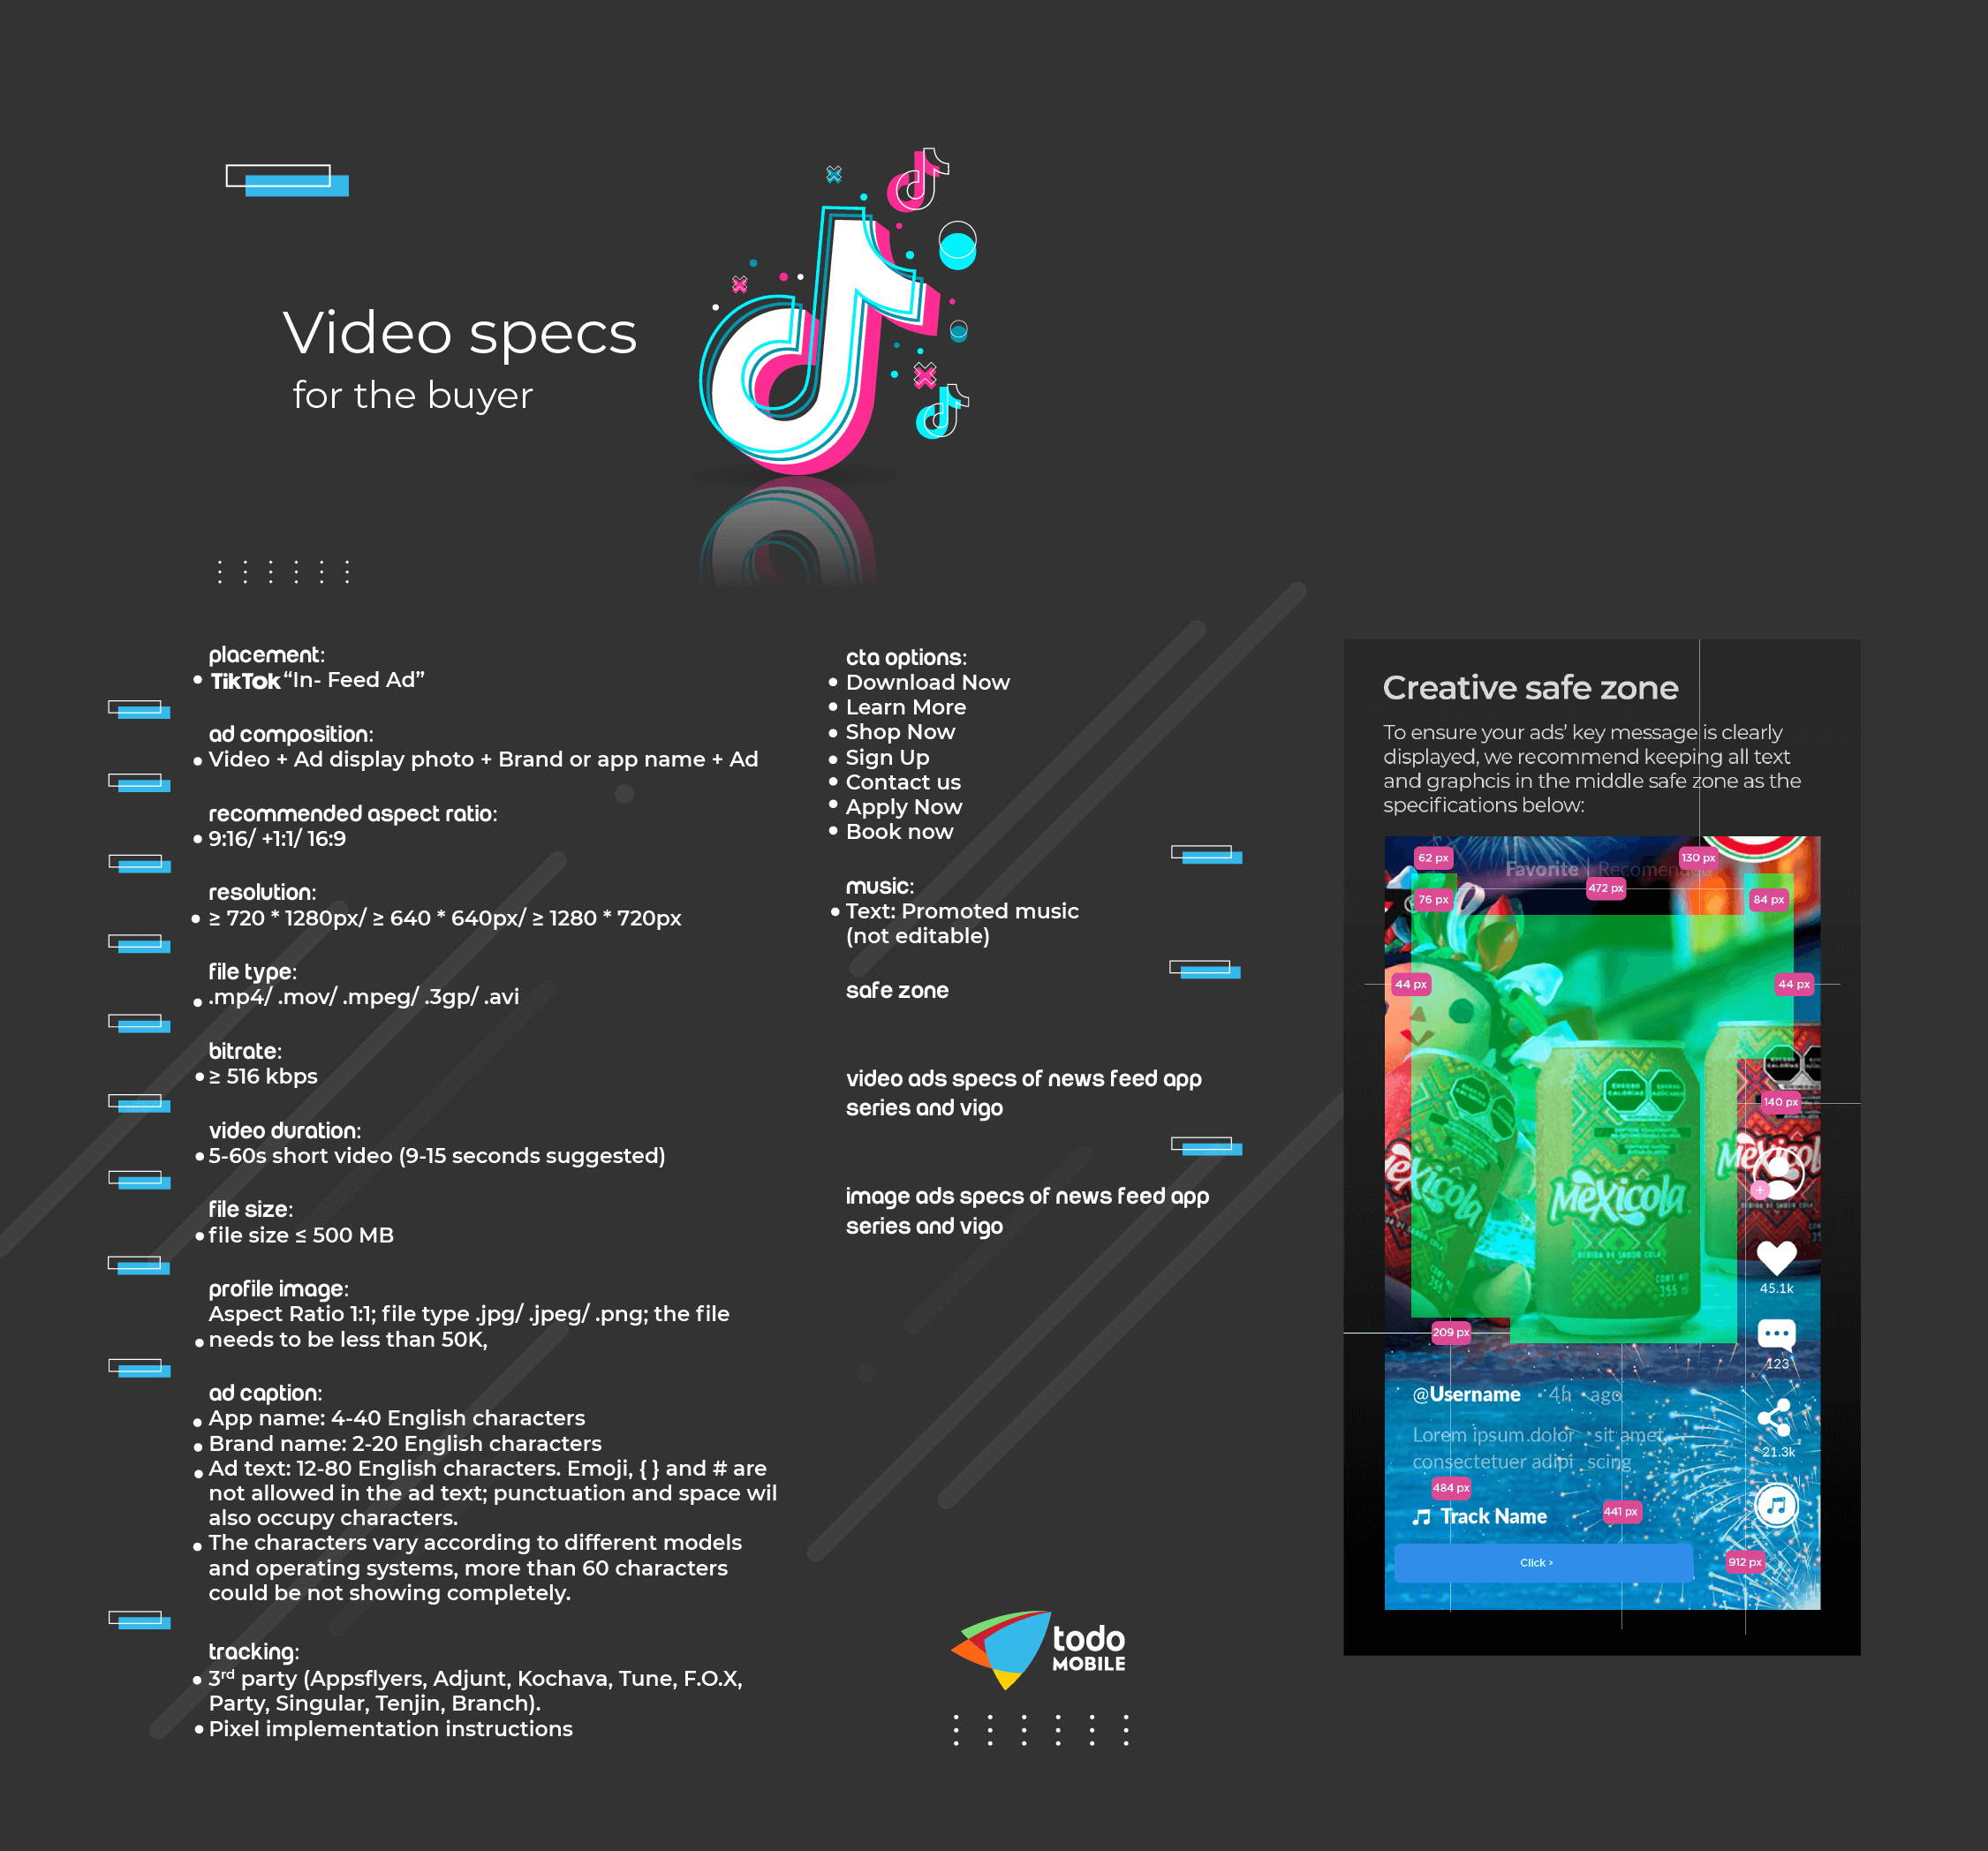 an infographic made by todoMobile to explain best practices for tiktok